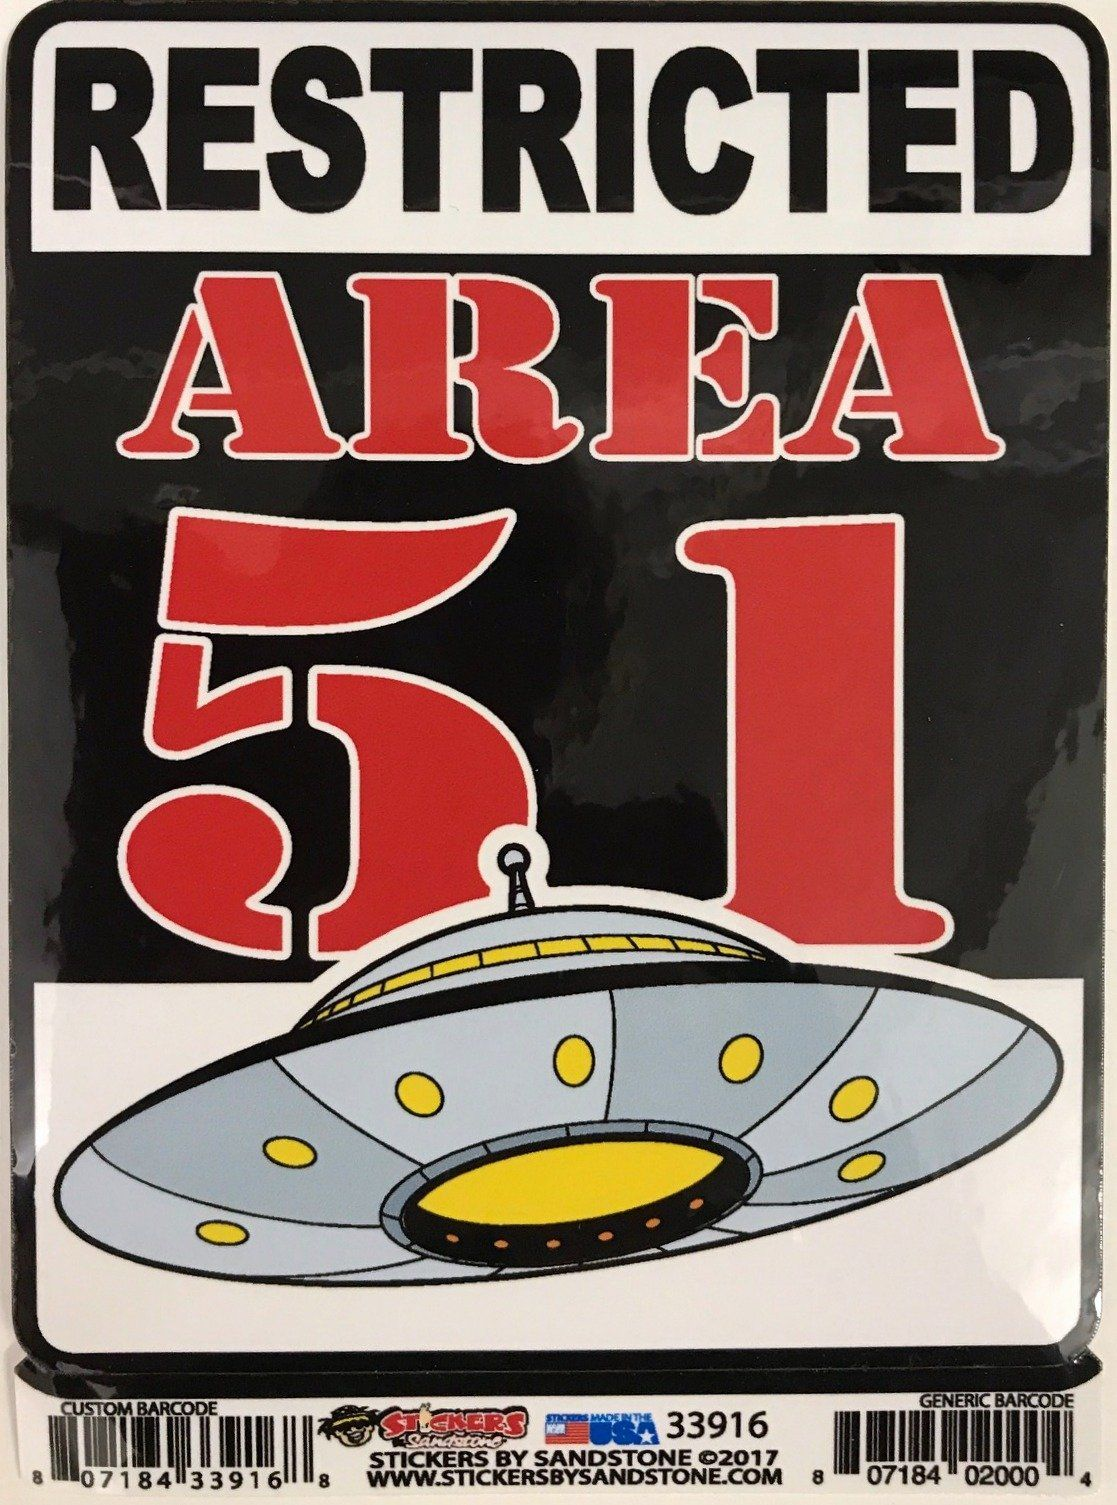 Sticker restricted area 51